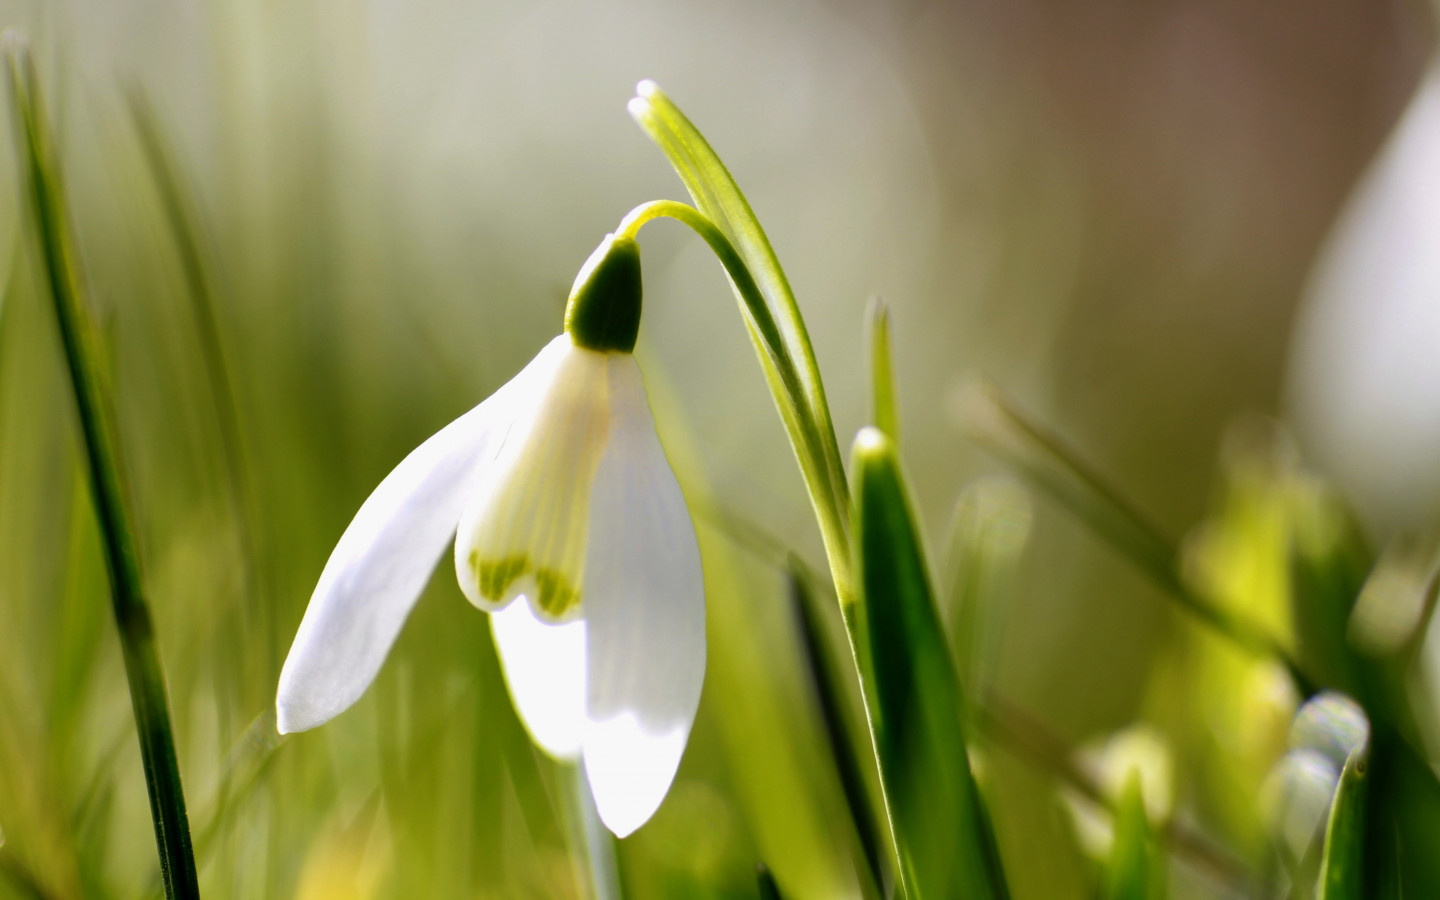 Spring is here. Snowdrop | 1440x900 wallpaper